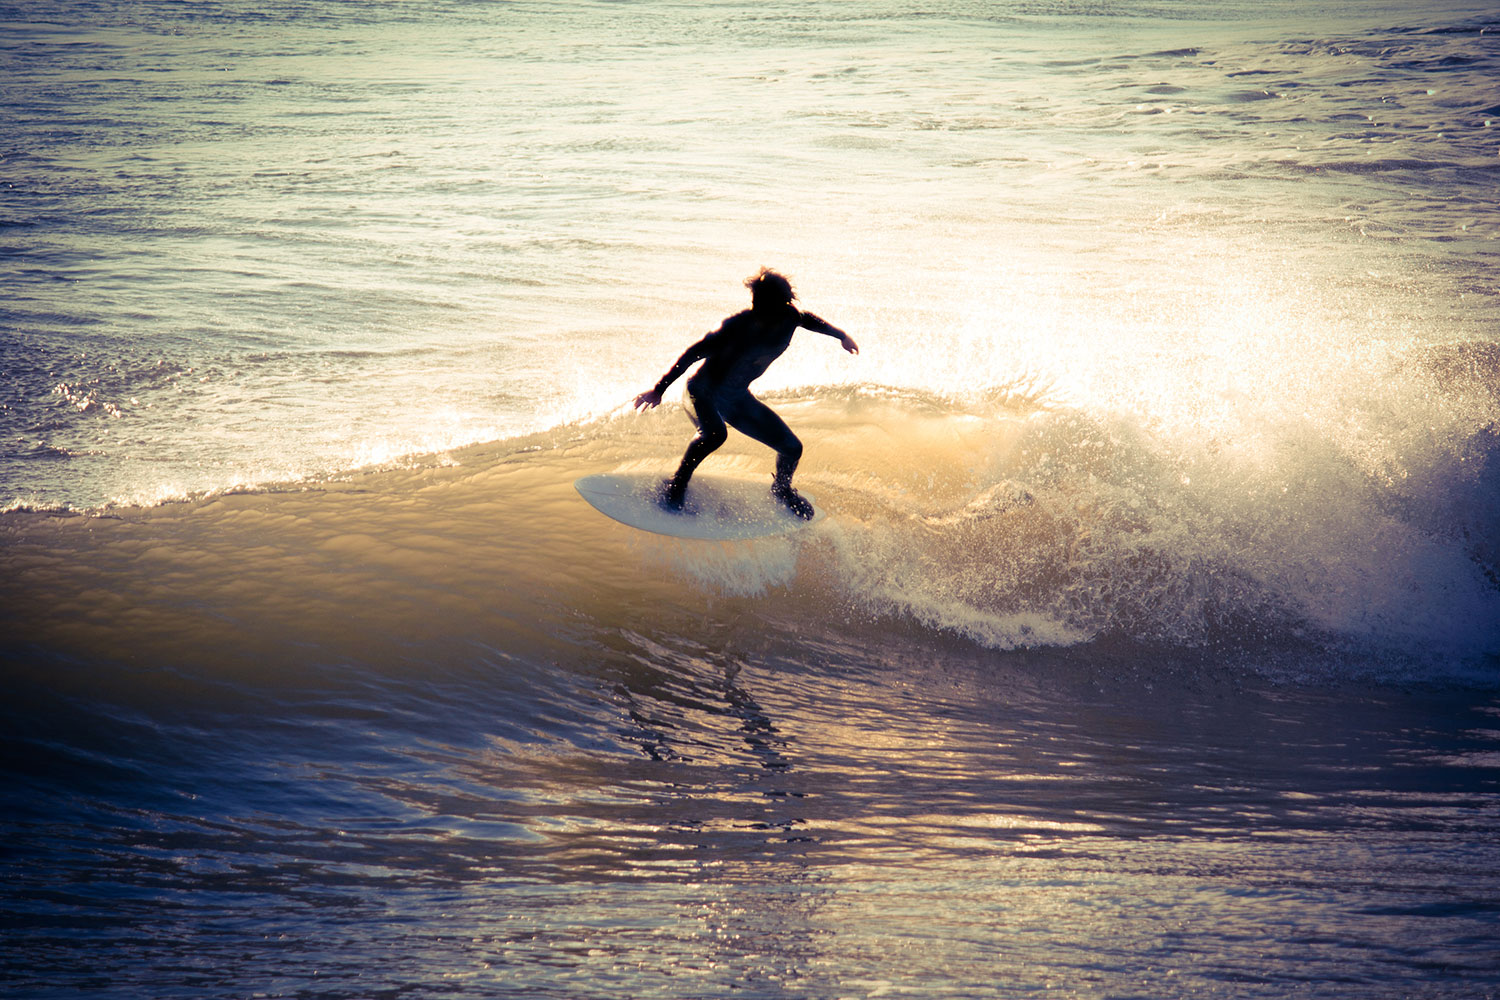 Joy of surfing is the act